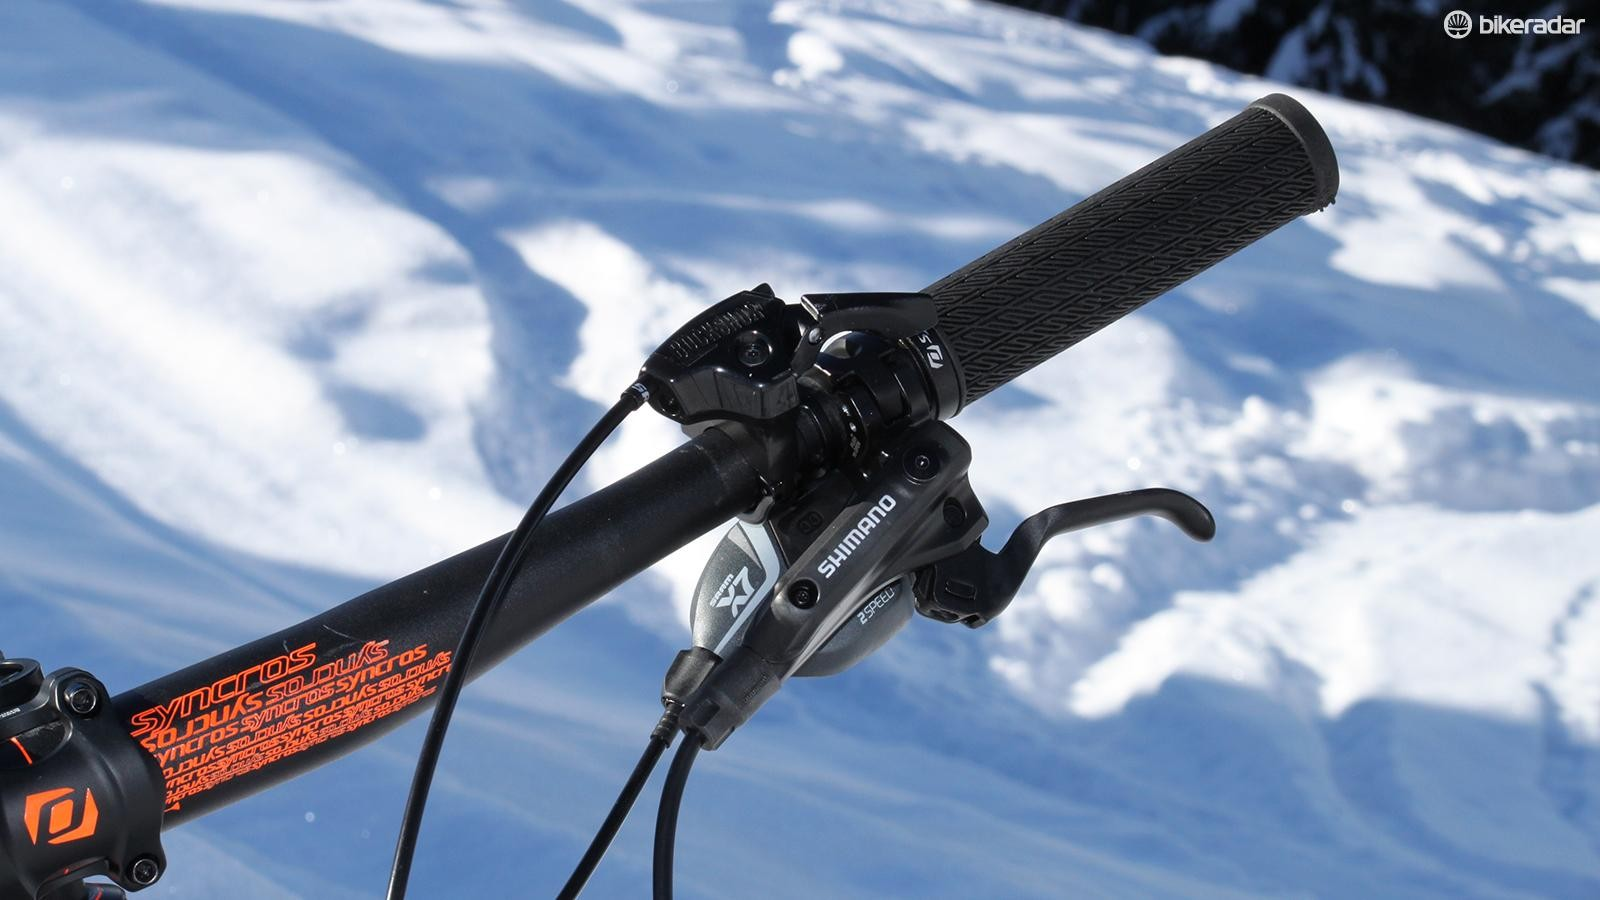 The Shimano Deore stoppers were the business, as usual, but require very careful feathering on snow